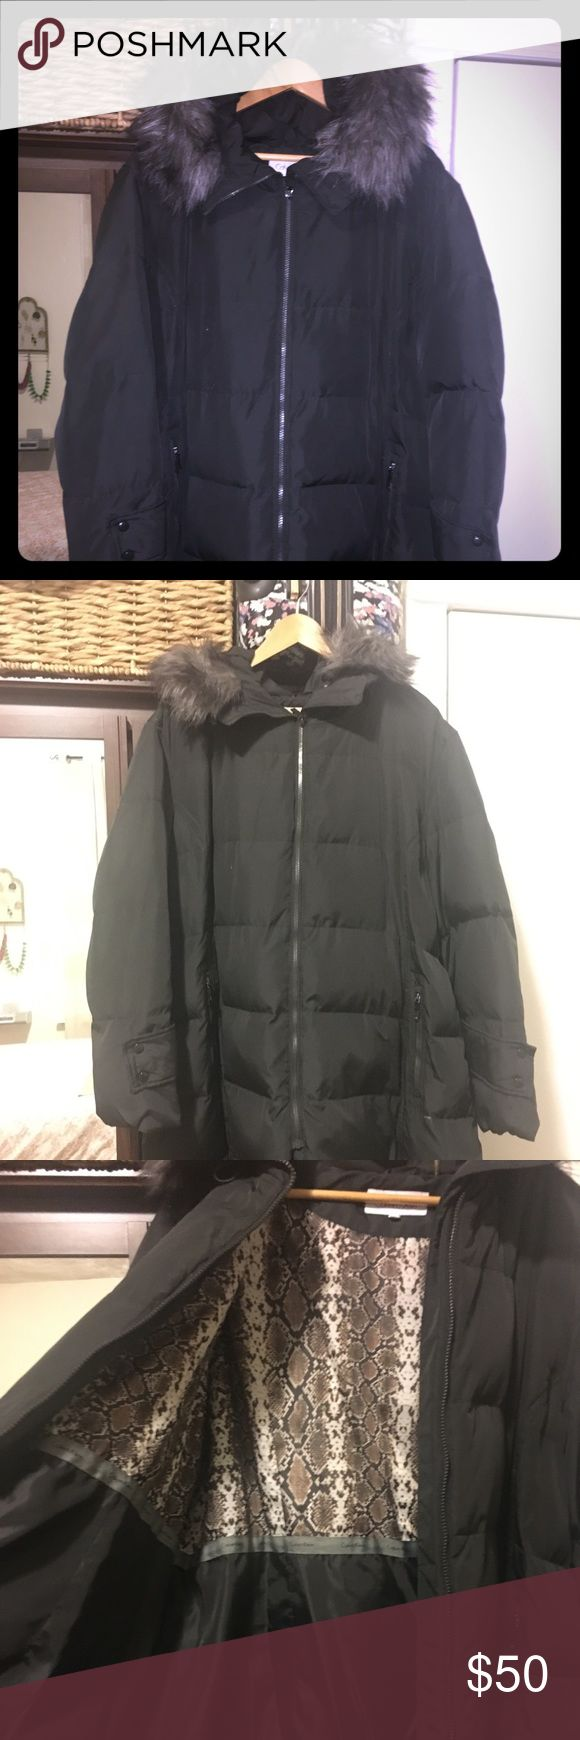 Calvin Klein Plus size puffer coat Beautiful Like new confito puffer coat.  Charcoal grey with faux fur hood. Calvin Klein Jackets & Coats Puffers